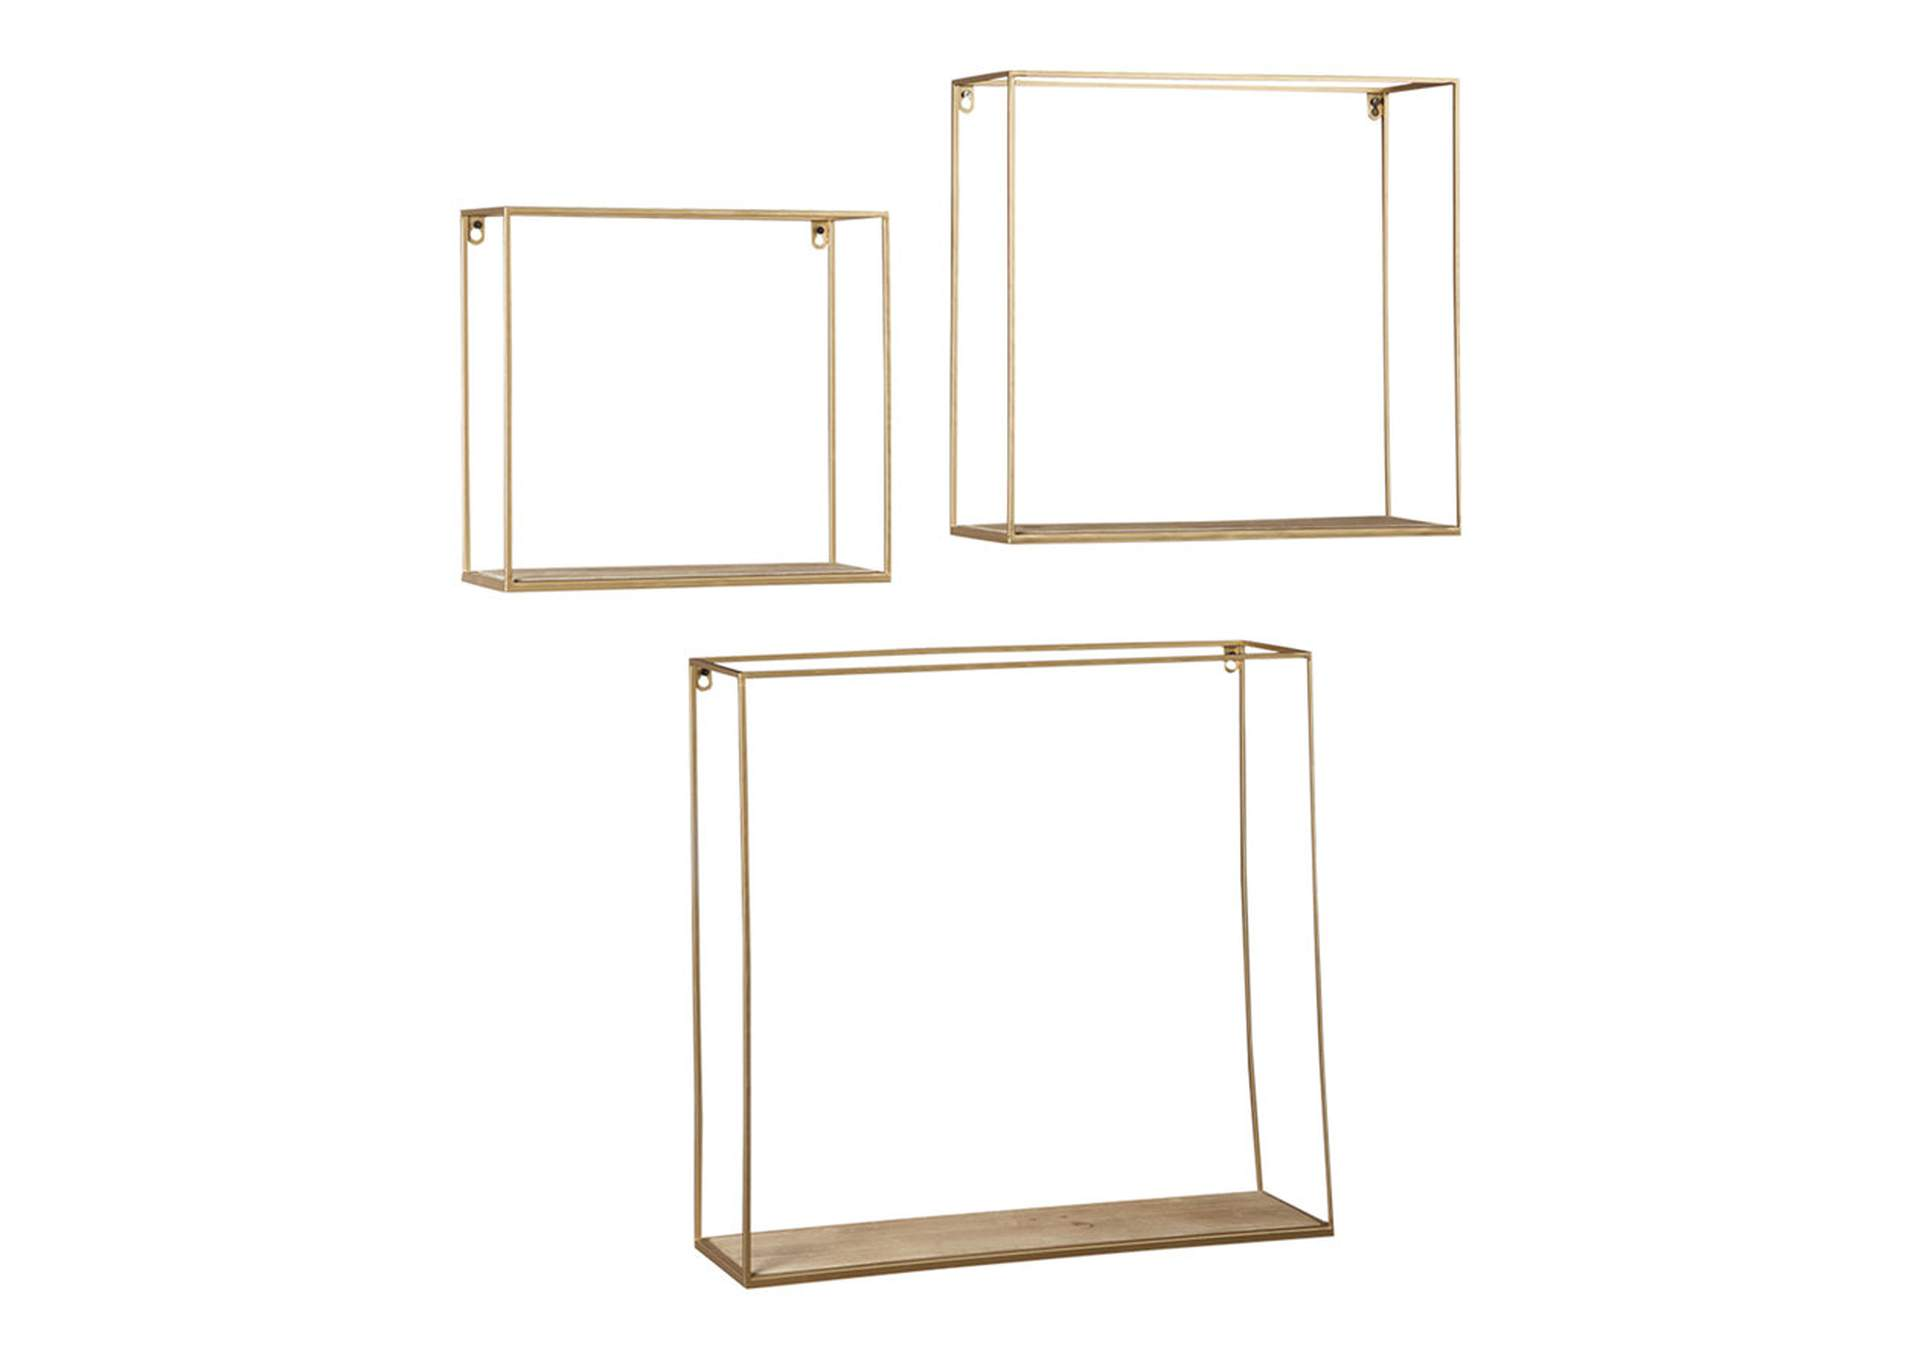 Efharis Natural/Gold Finish Wall Shelf Set (Set of 3),Direct To Consumer Express